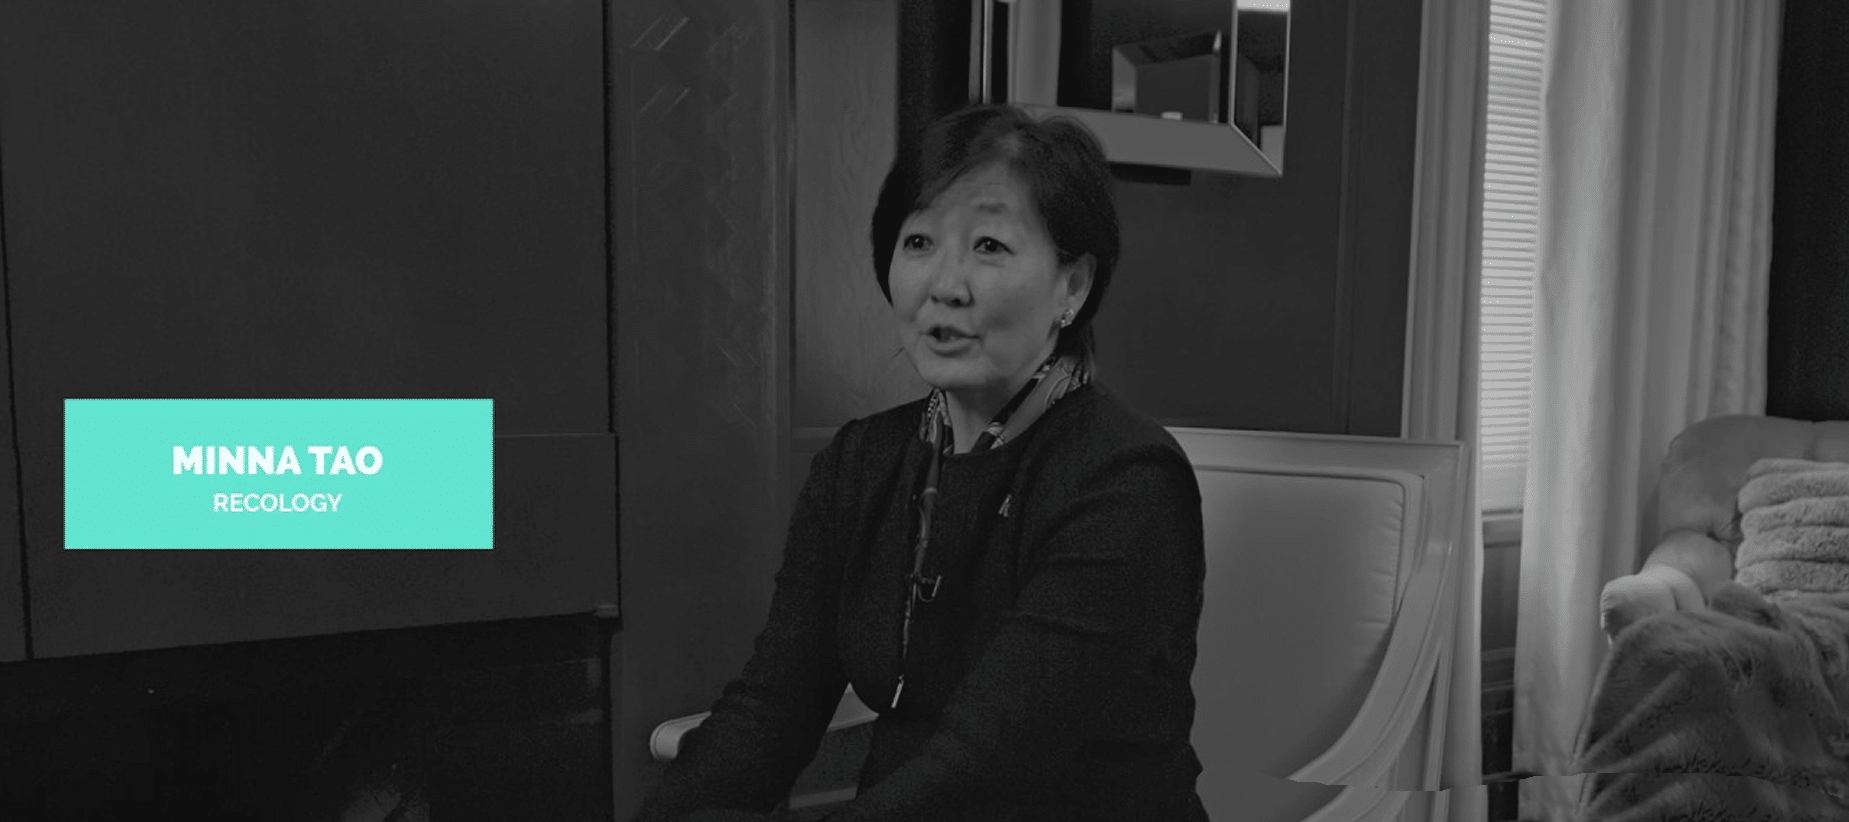 Announcing Minna Tao to be on the Diversity Panel for Power Lunch 2020